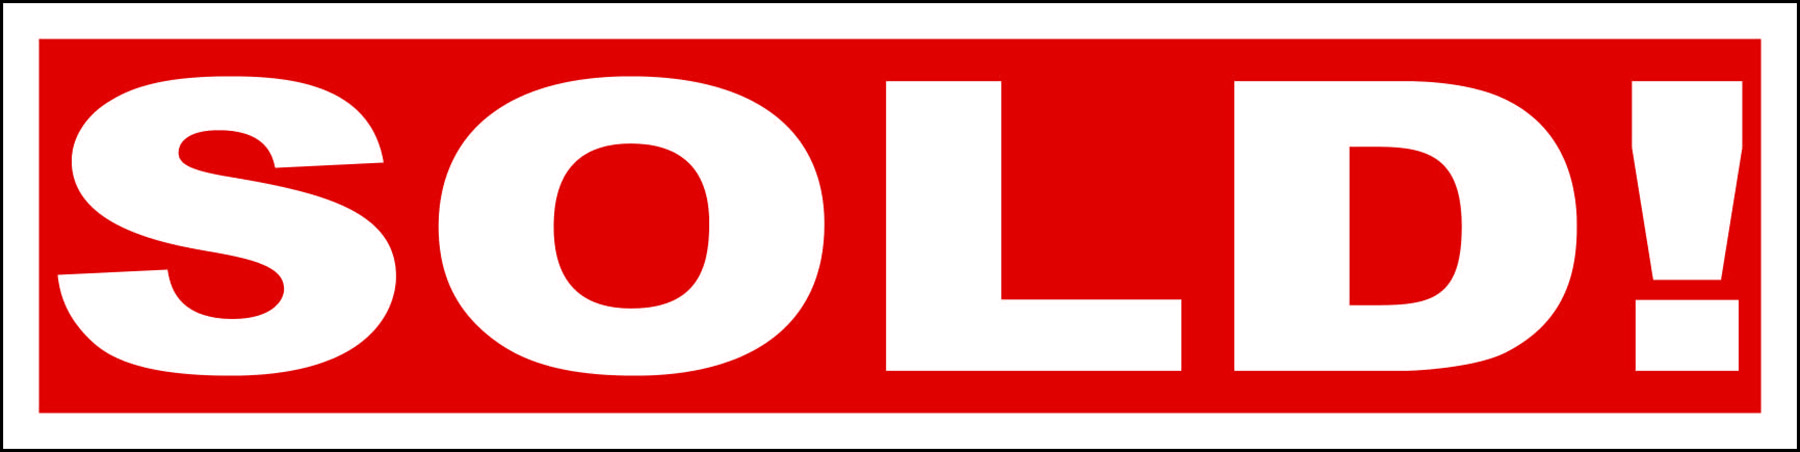 Sold! On Red